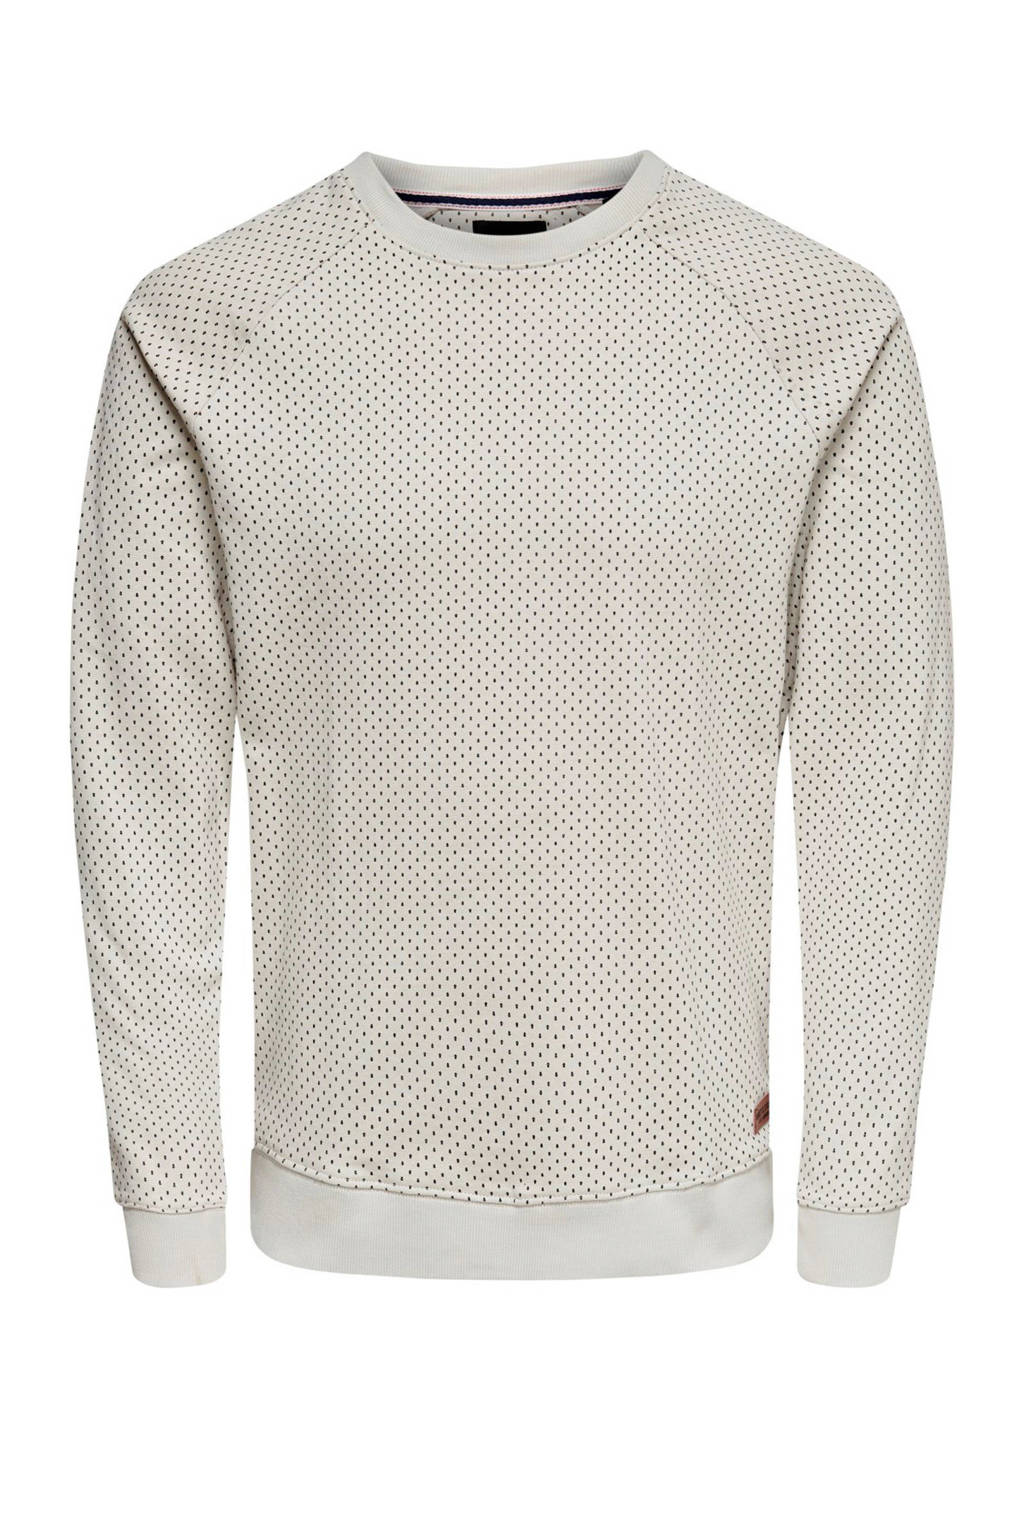 ONLY & SONS sweater met all over print wit, Wit